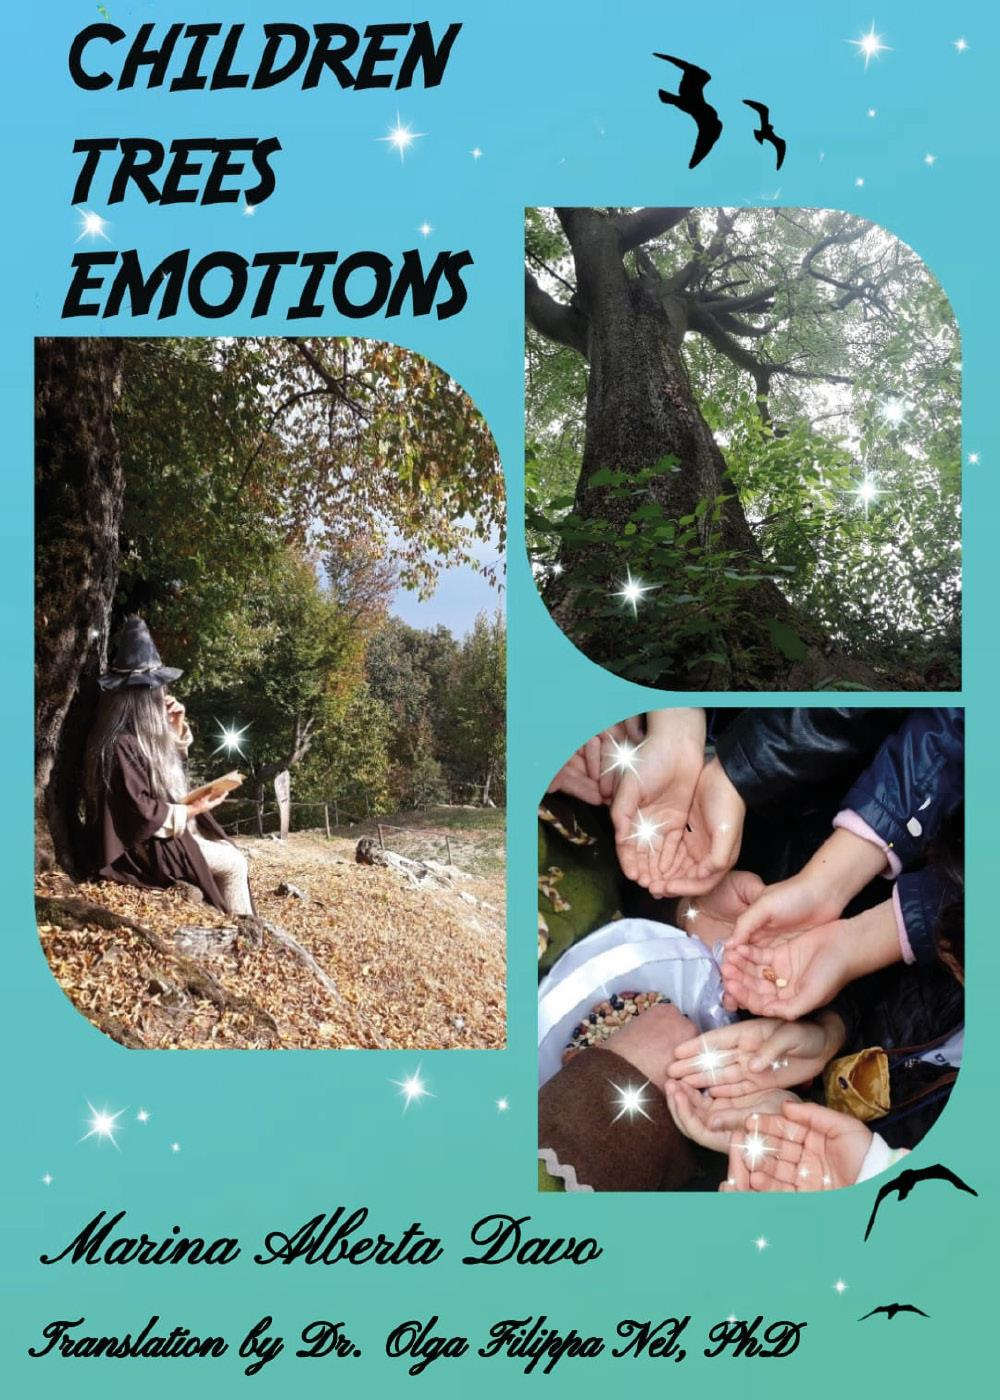 Children Trees Emotions